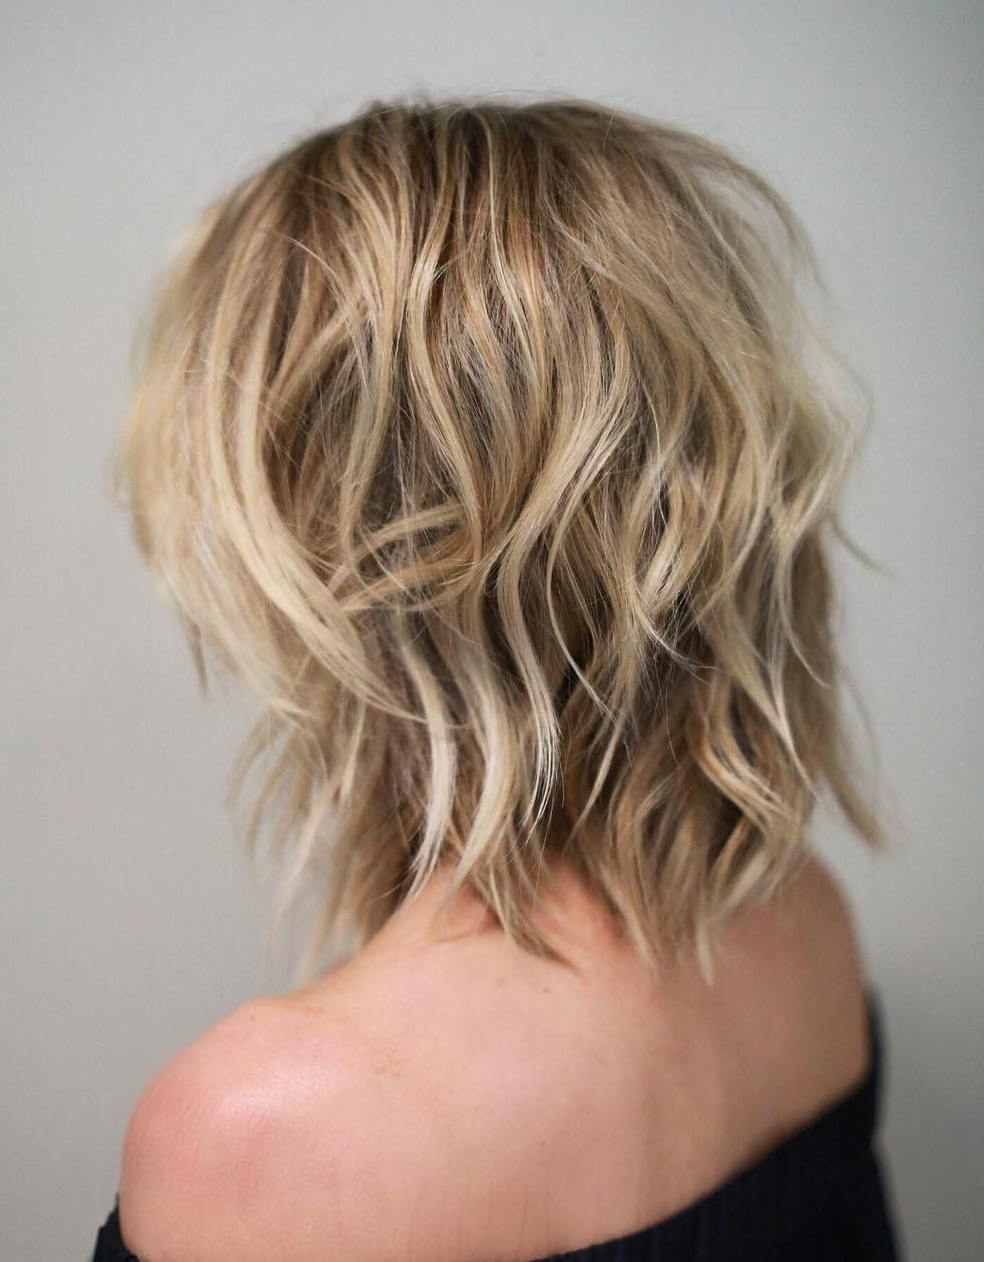 Fashionable Medium Haircuts Layered Styles Throughout Medium Hairstyles And Haircuts For Shoulder Length Hair In 2018 — Trhs (View 7 of 20)